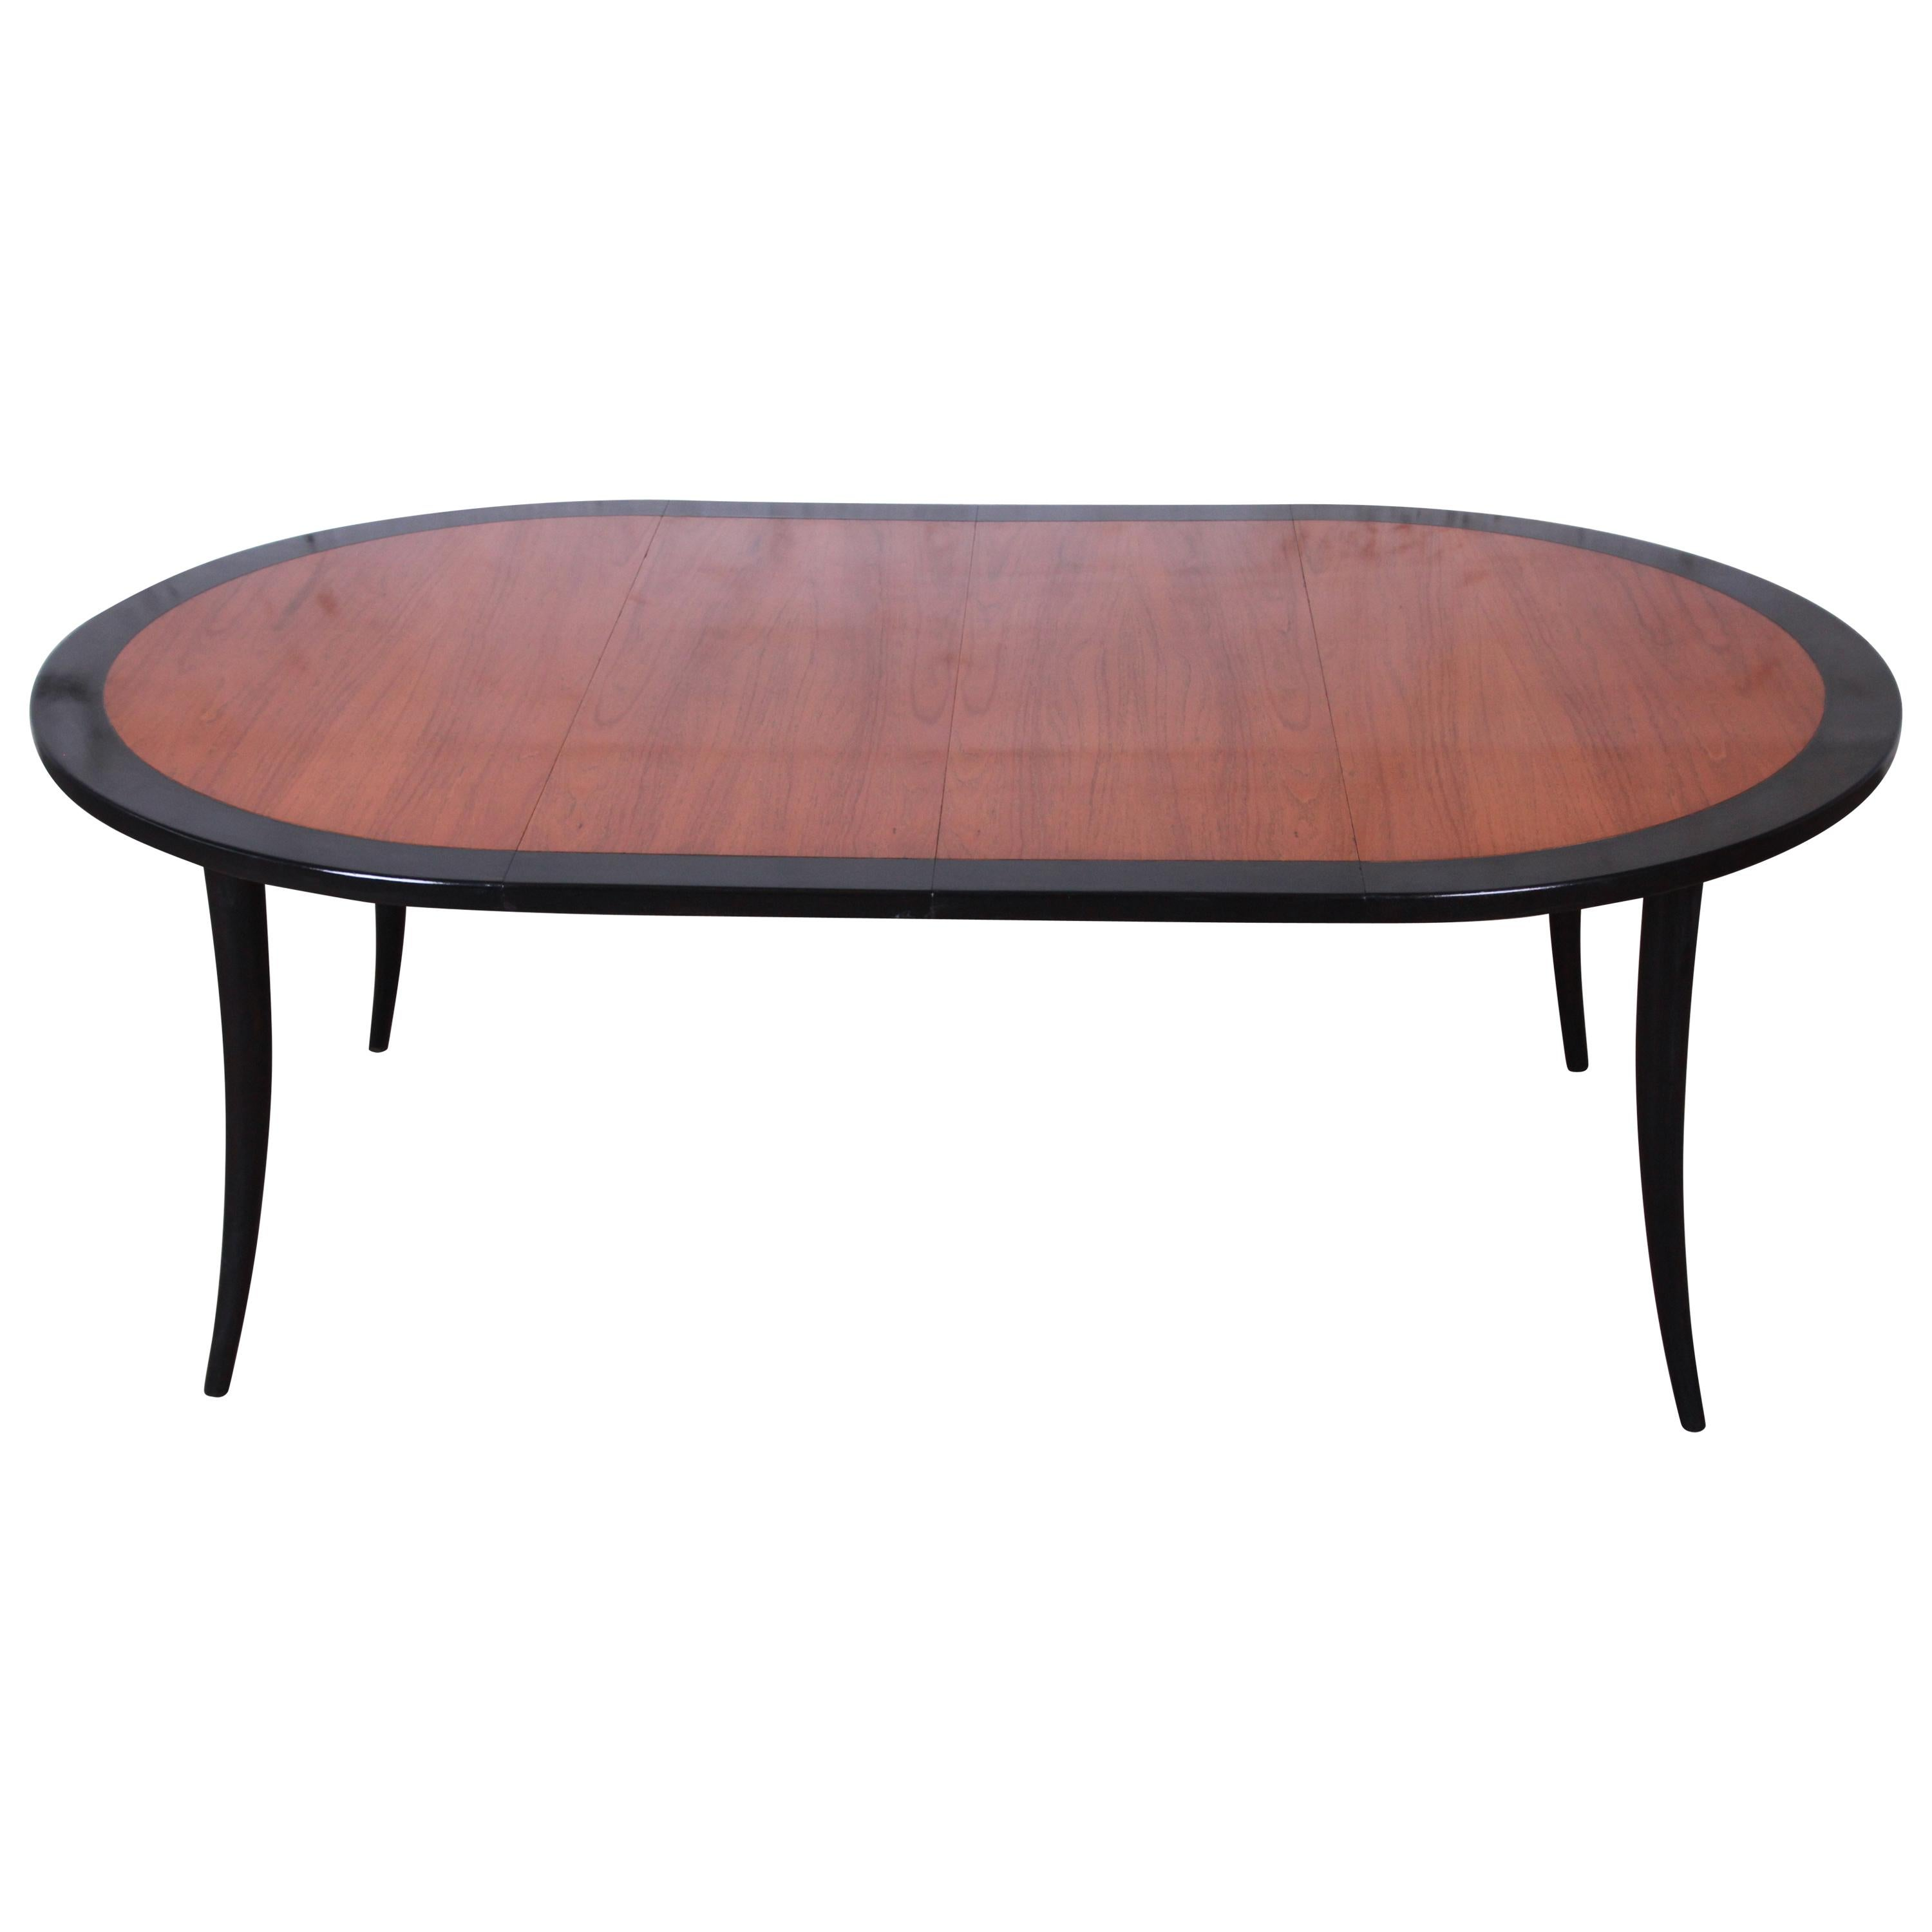 Harvey Probber Teak and Black Lacquer Saber Leg Extension Dining Table, 1950s